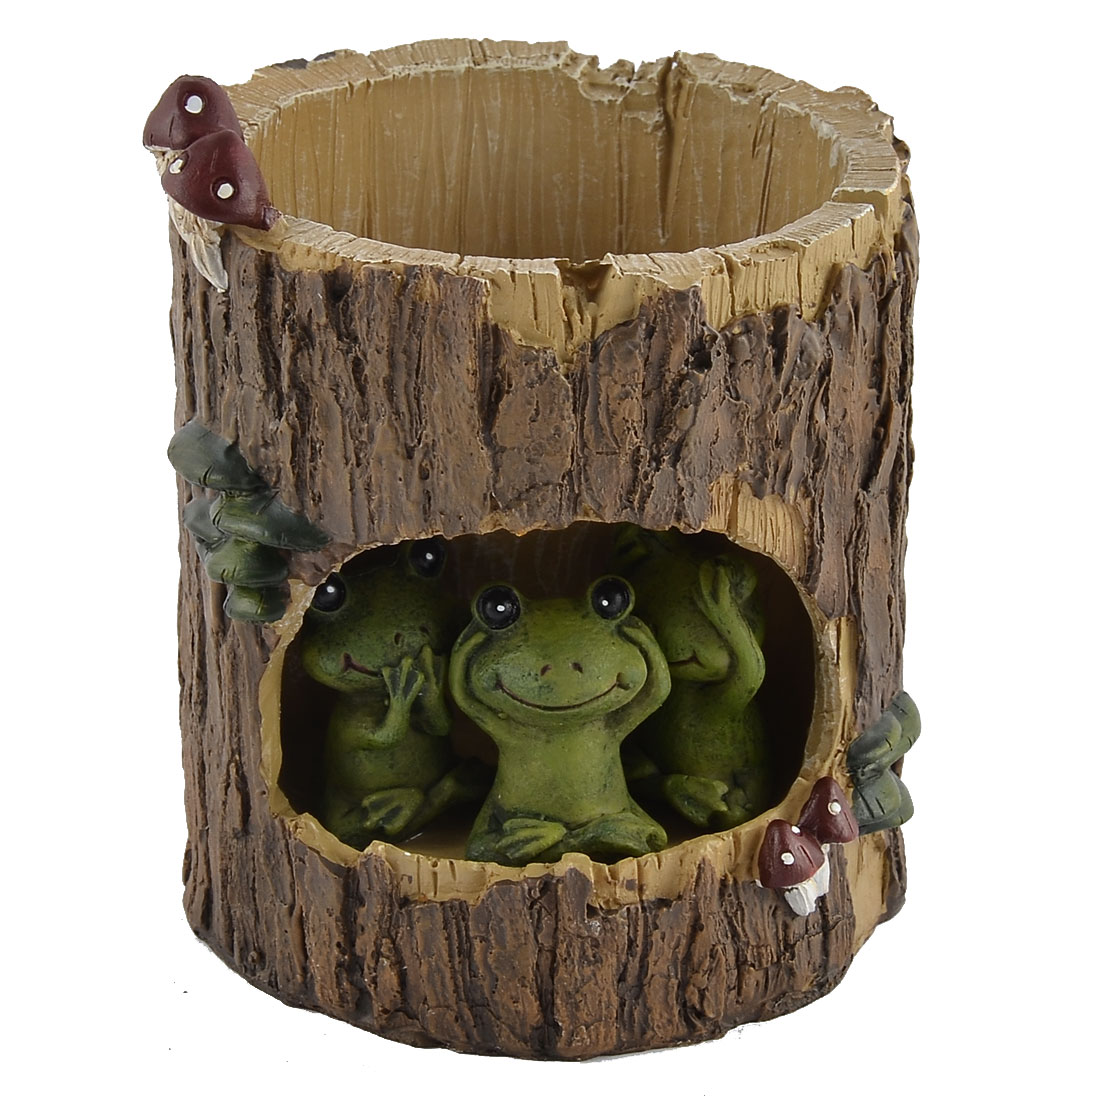 Home Garden Office Resin Tree Hole Frog Shaped Aloes Cactus Plant Flower Pot Brown Green